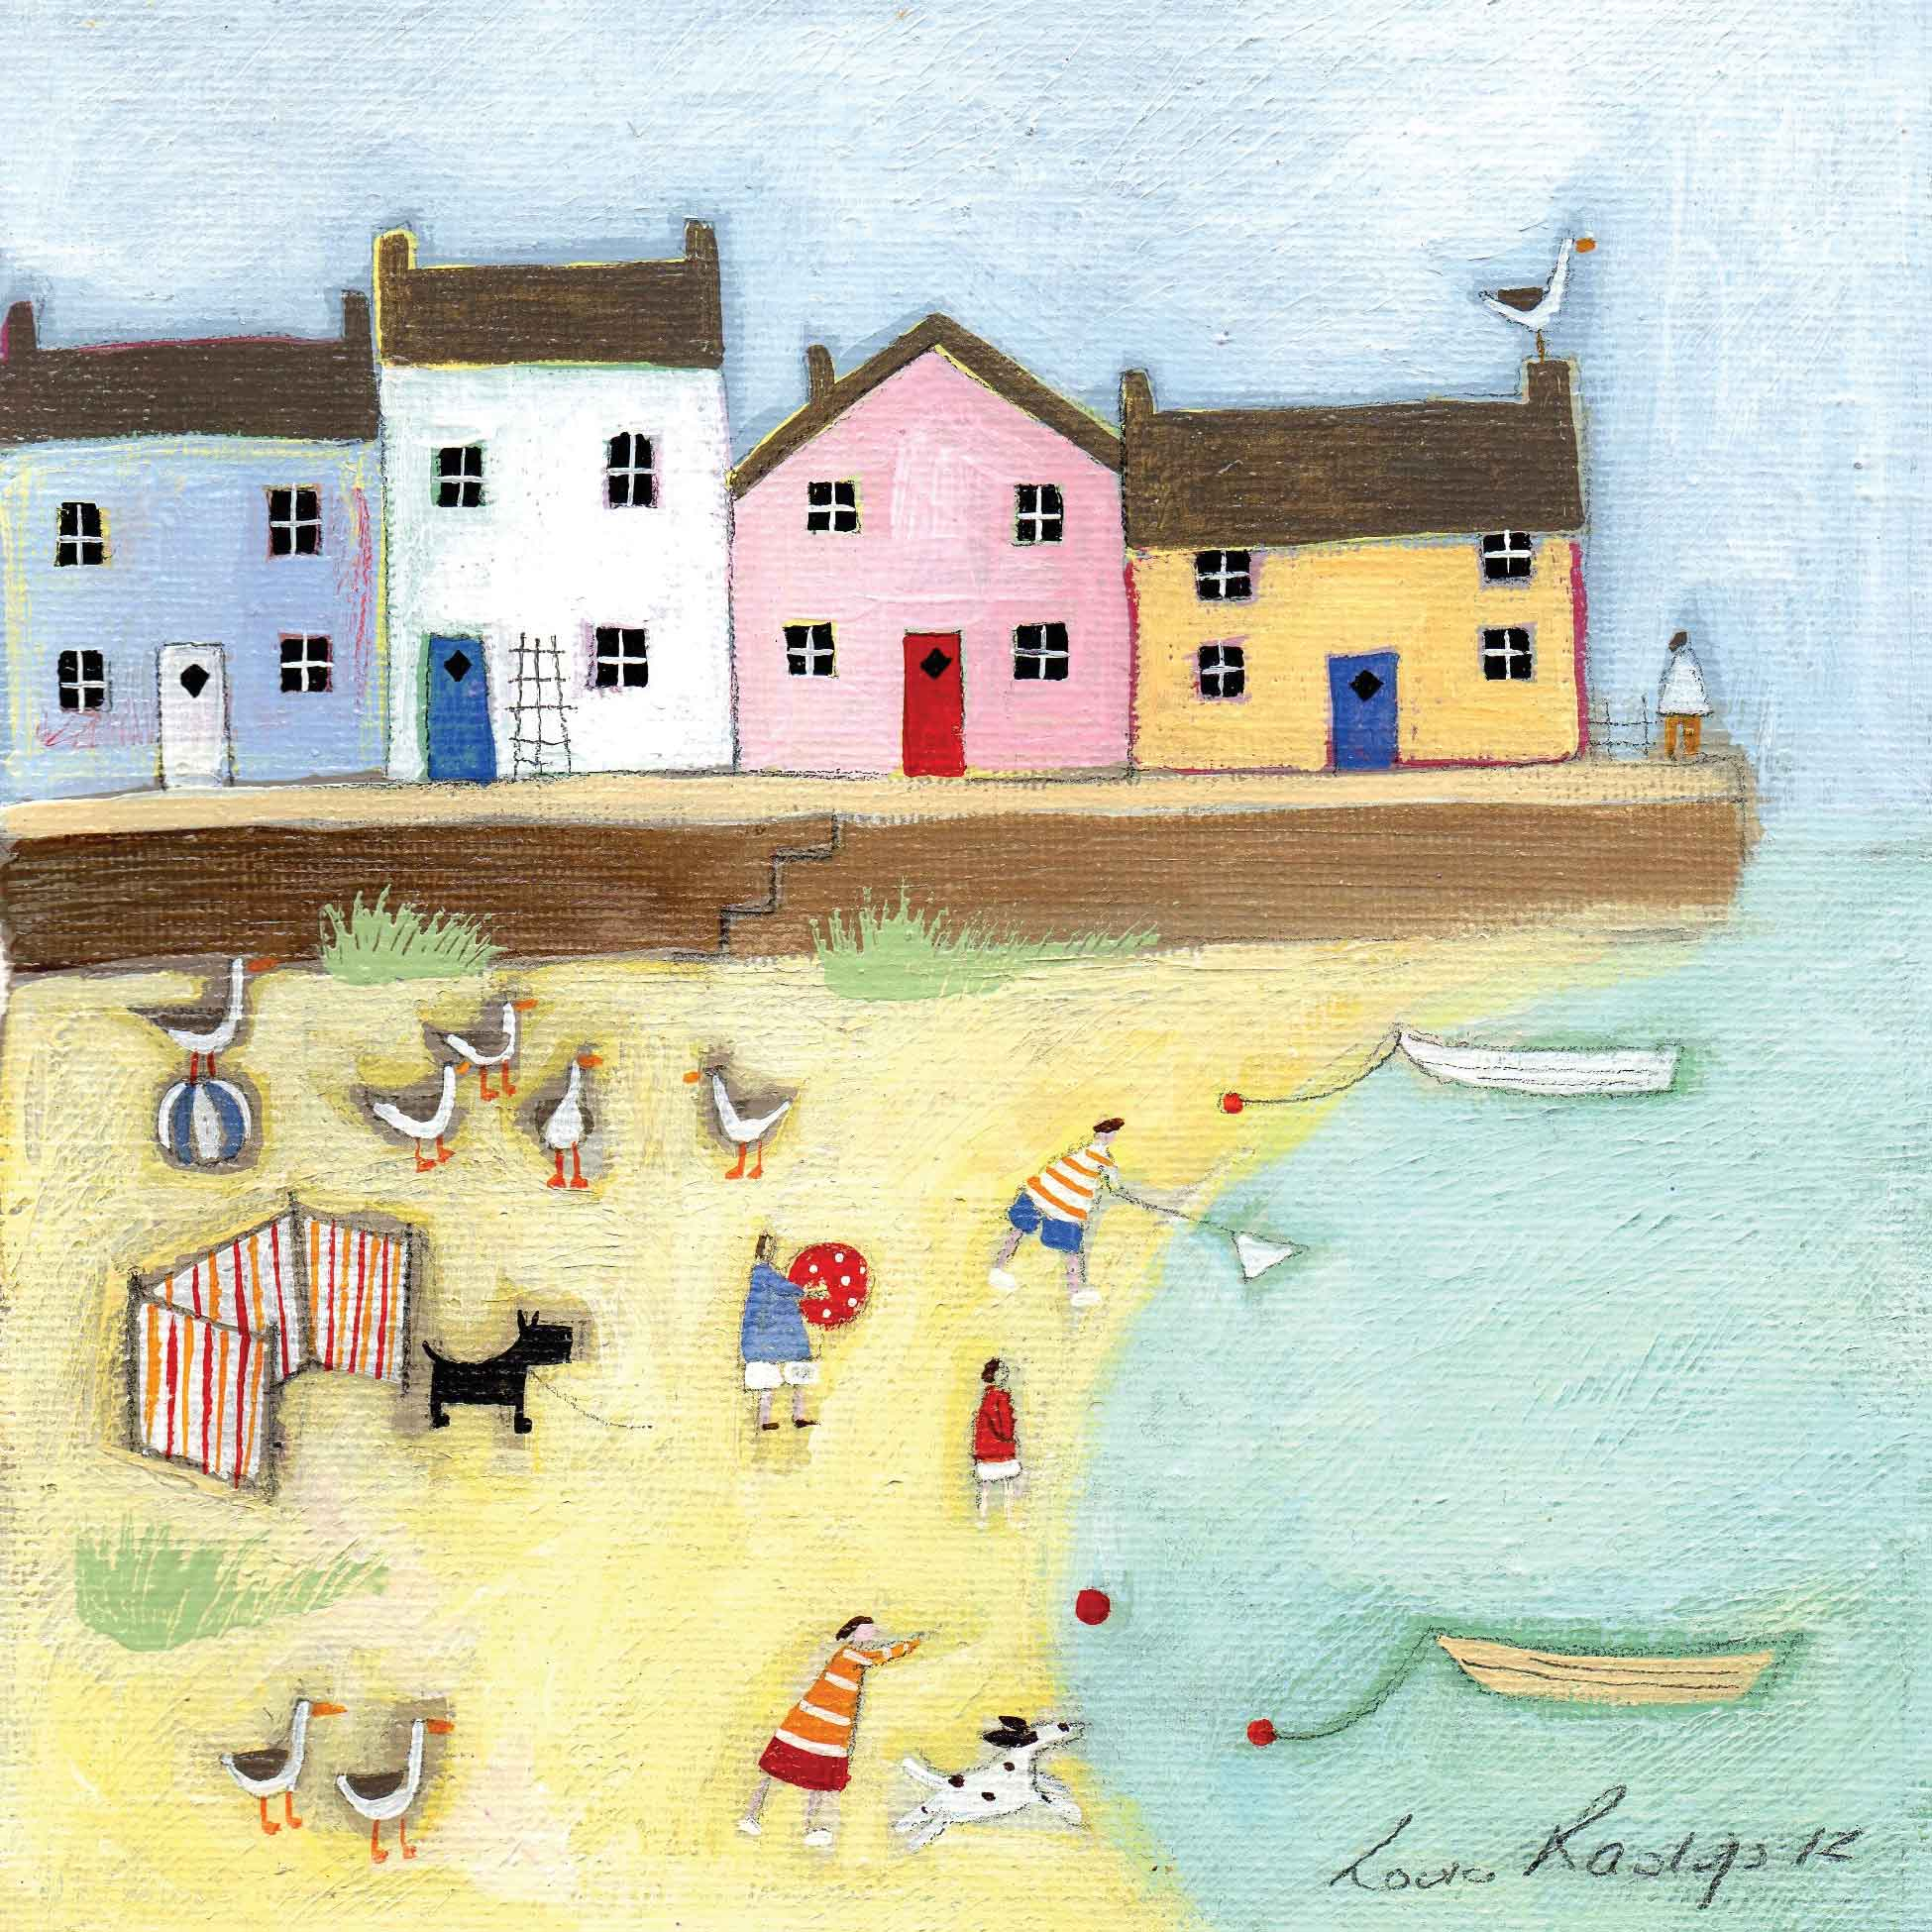 Little Harbour by Louise Rawlings, Art Greeting Card, Gouache and Acrylic, Beach scene with houses, people, dogs, boats and birds